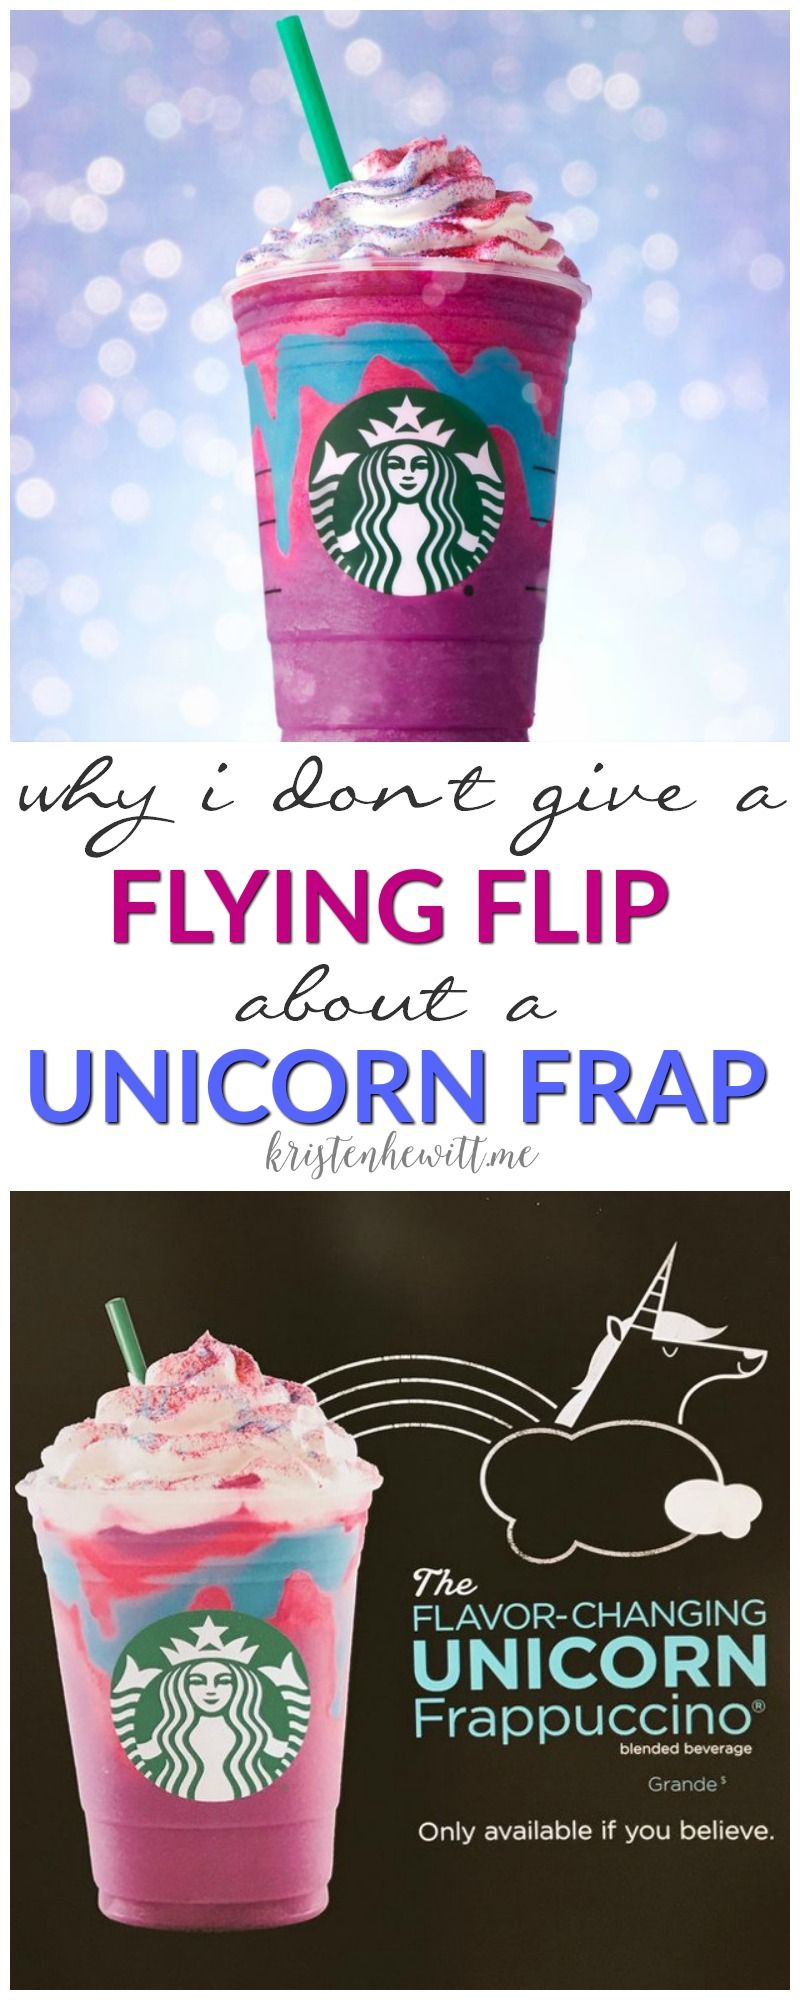 Do you buy into the Starbucks hype about the new Unicorn